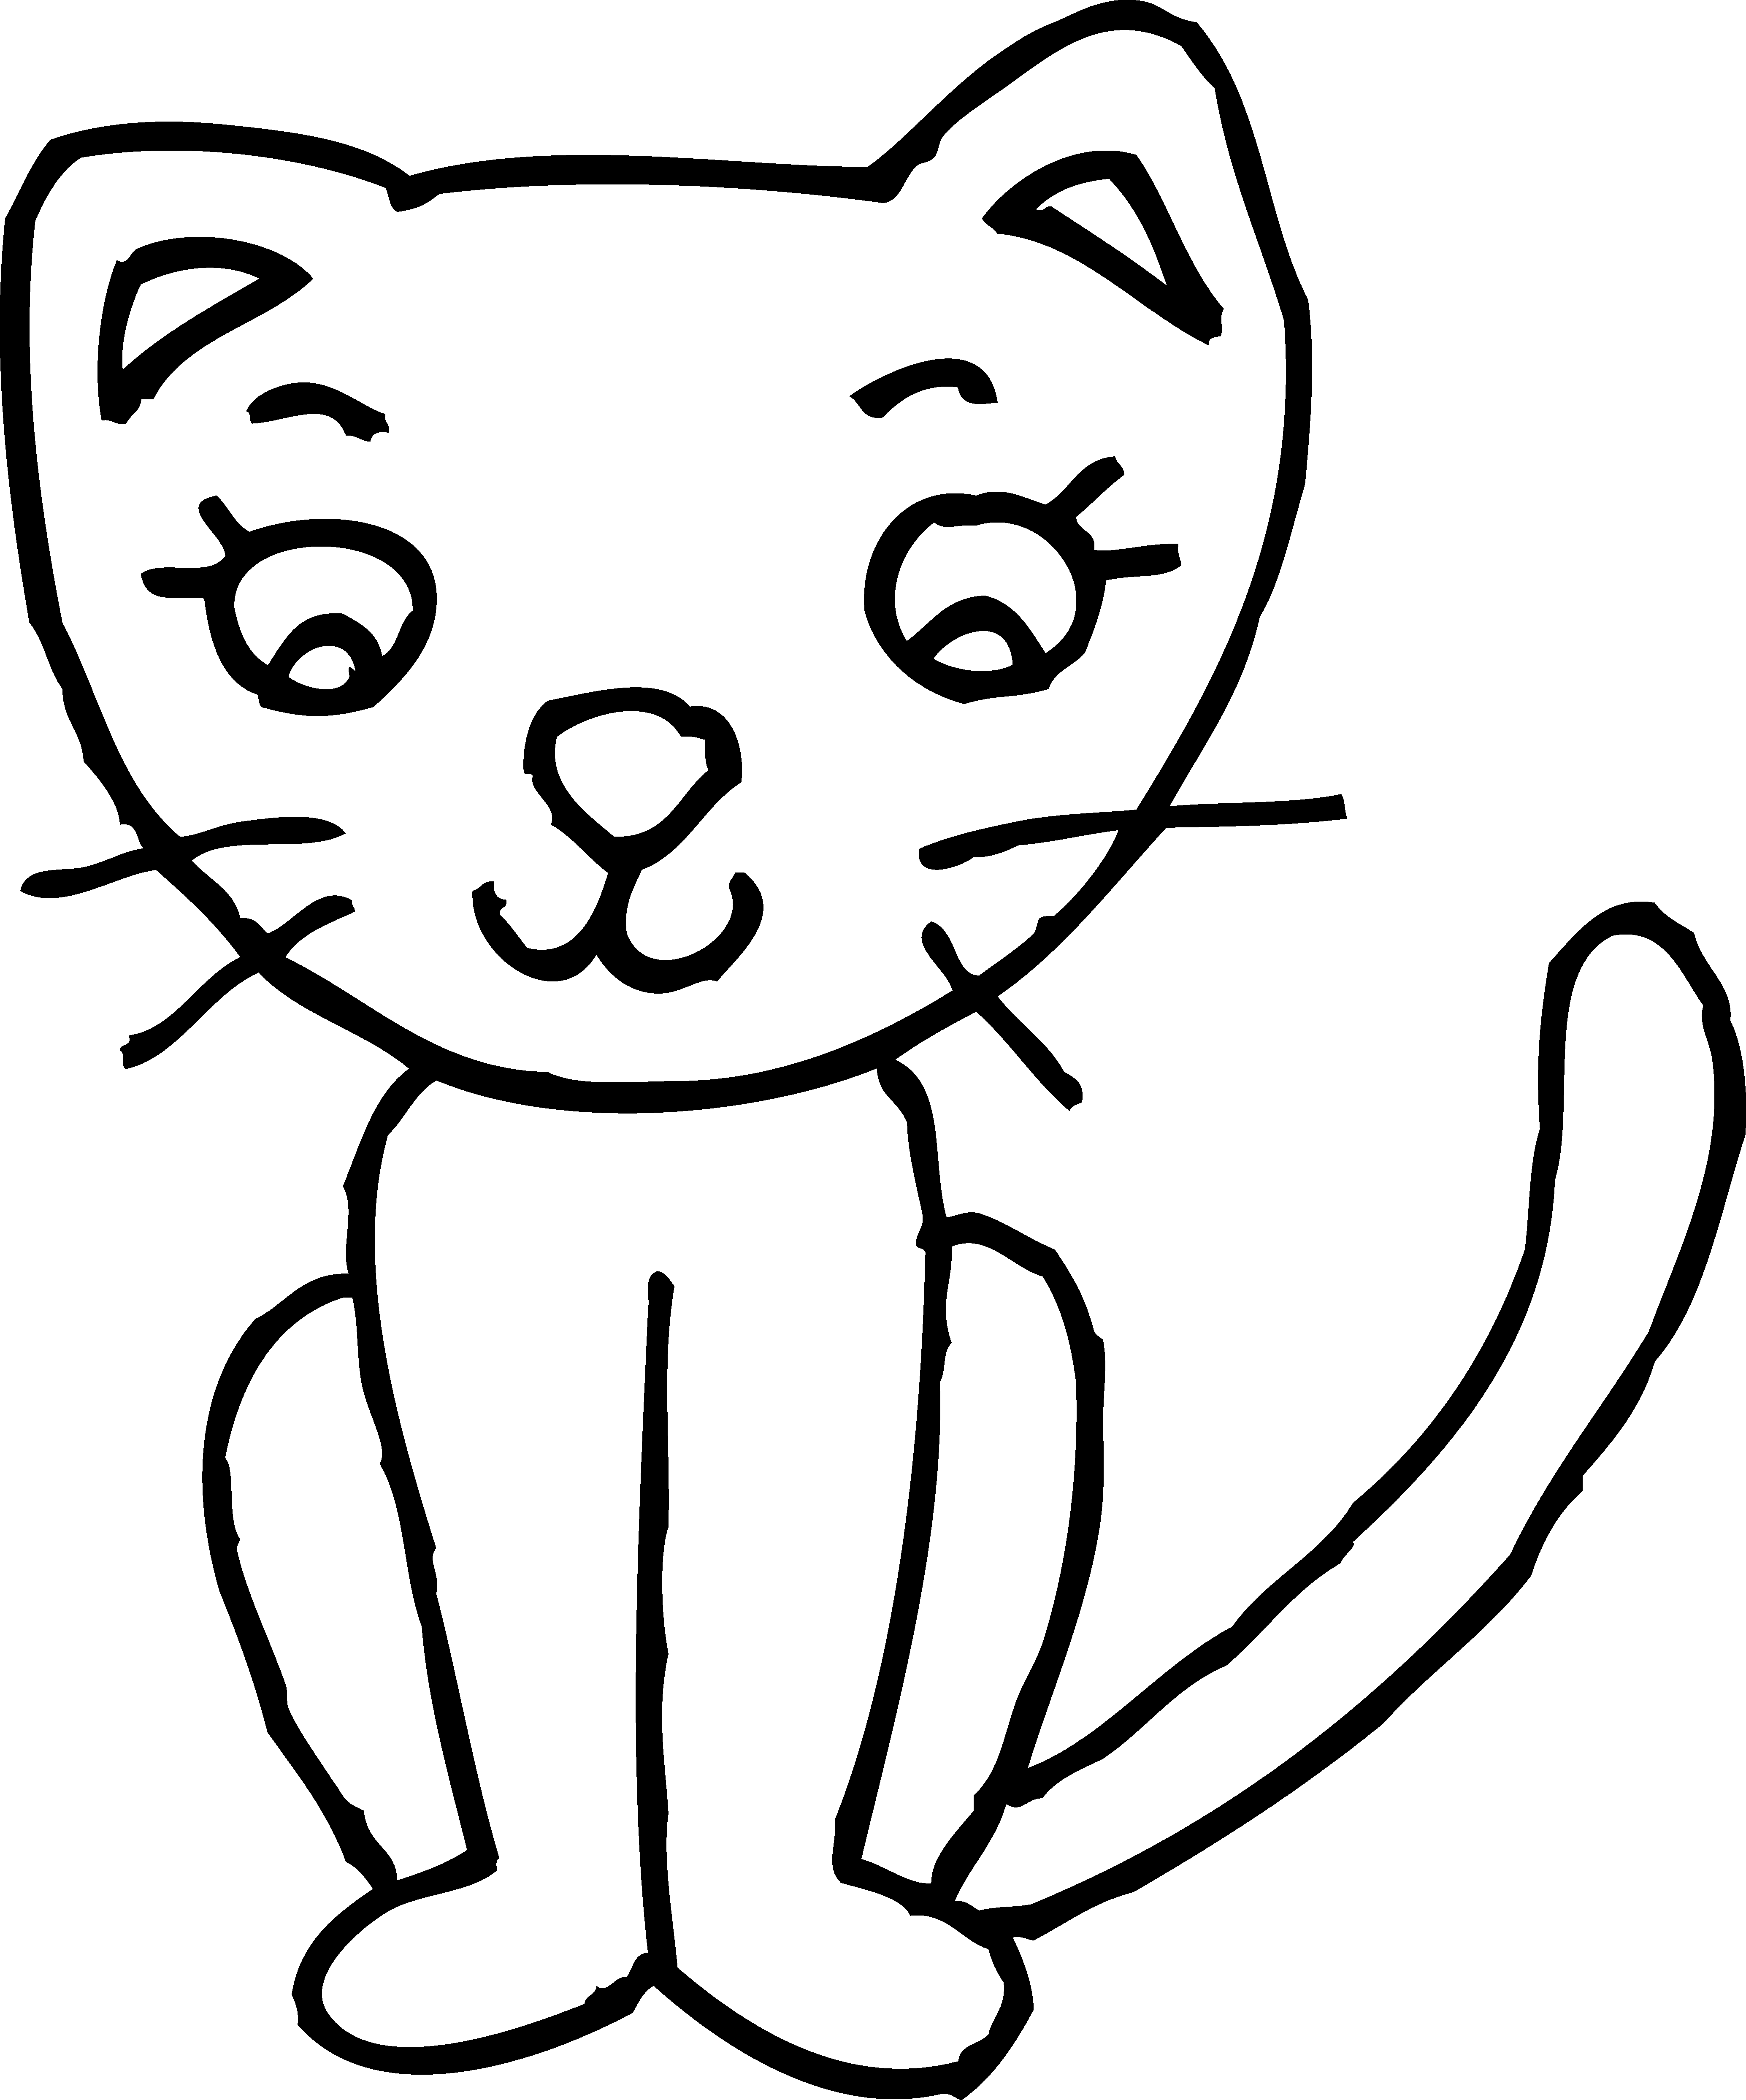 Clipart drawing cliparts free. Cat clip art simple banner transparent library